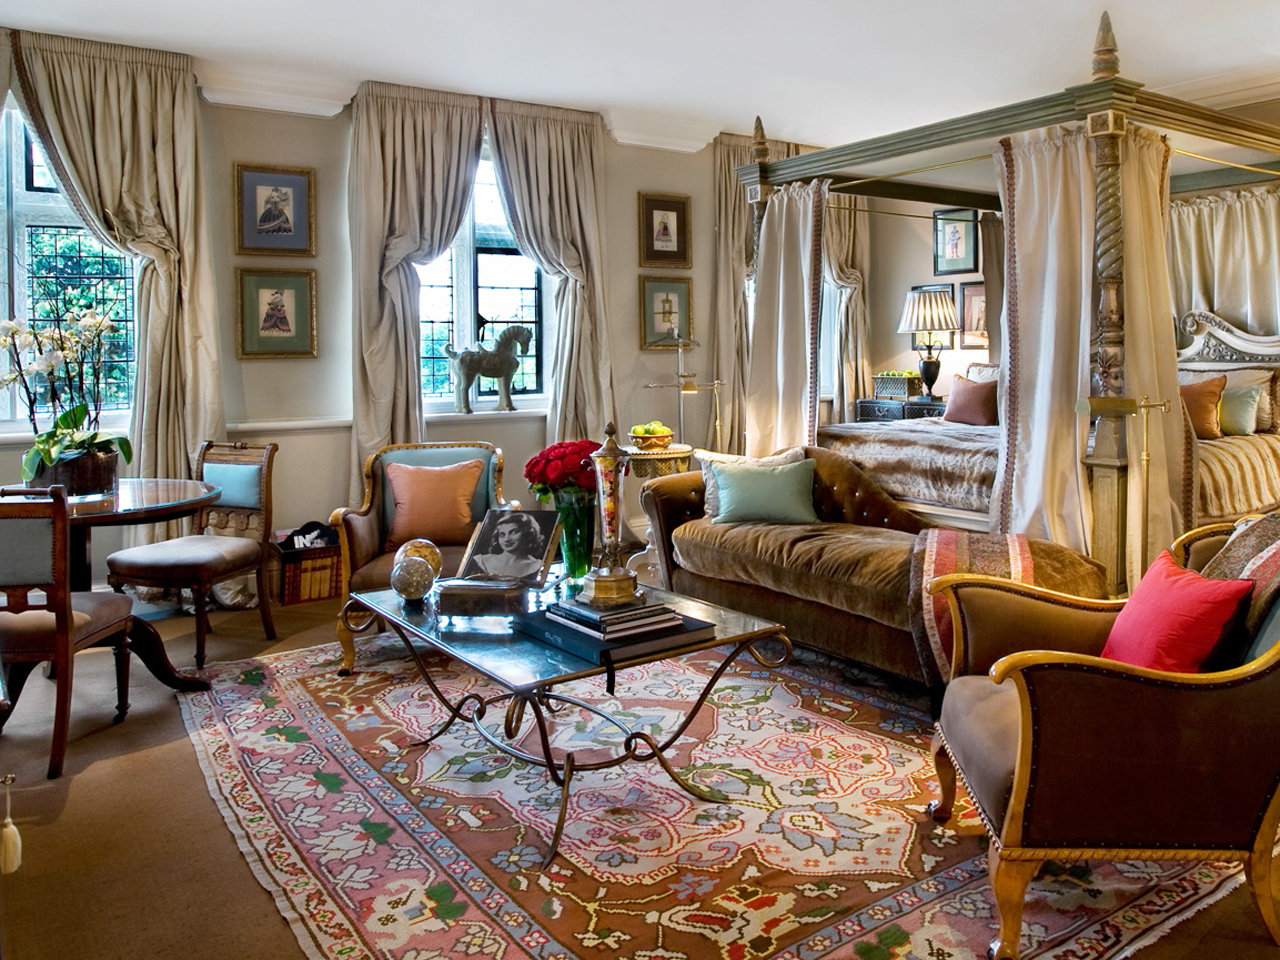 Charming hotels of london that save you money for Charming hotels of the world